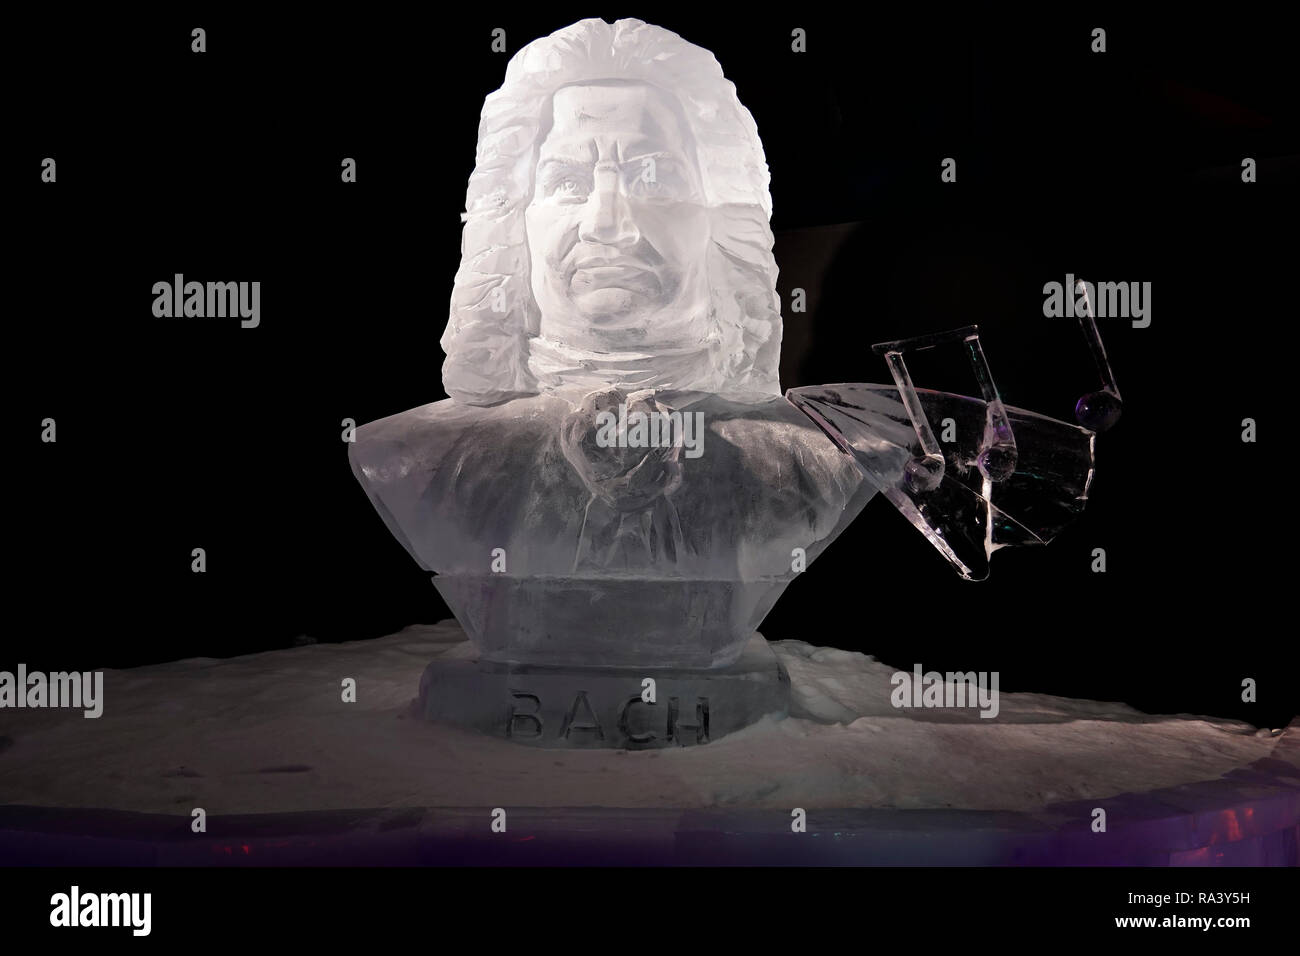 Bust of snow and ice, depicting the composer Johann Sebastian Bach. Exhibit of the 'Eiswelt' (Ice World) at the Bayrischer Bahnhof, Leipzig, Germany. - Stock Image